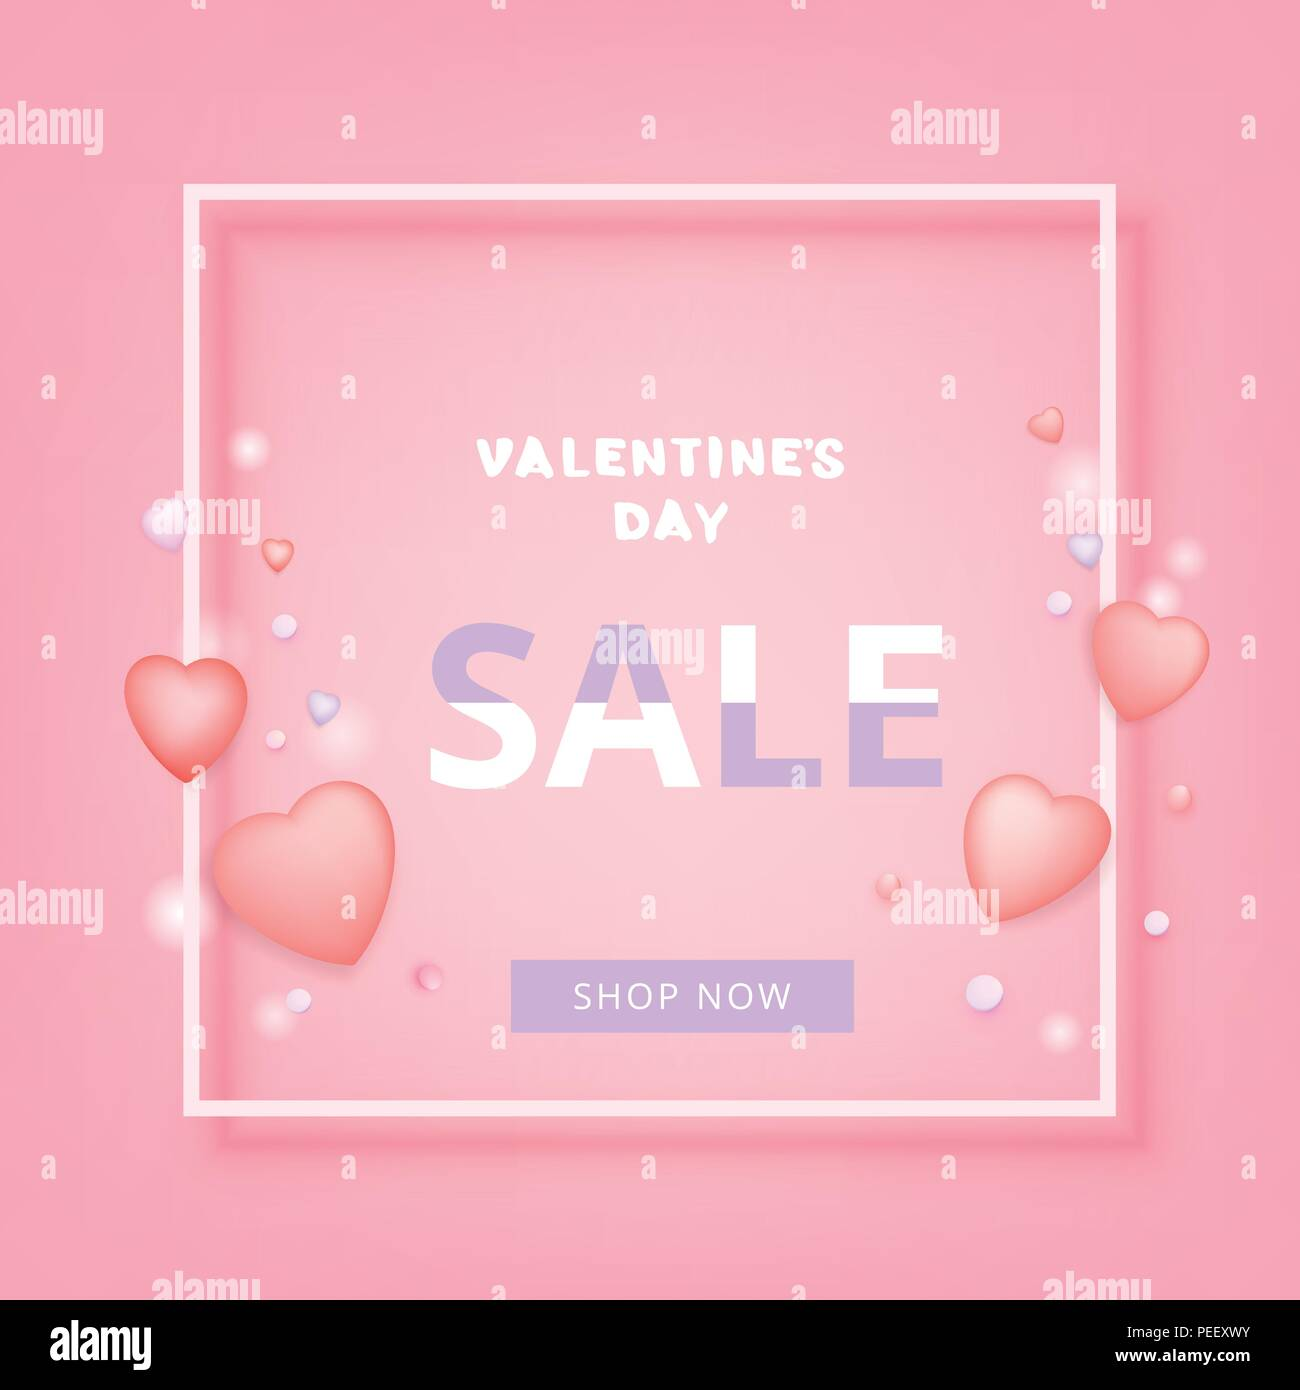 Valentines Day Sale Banner Element For Promotional Advertising